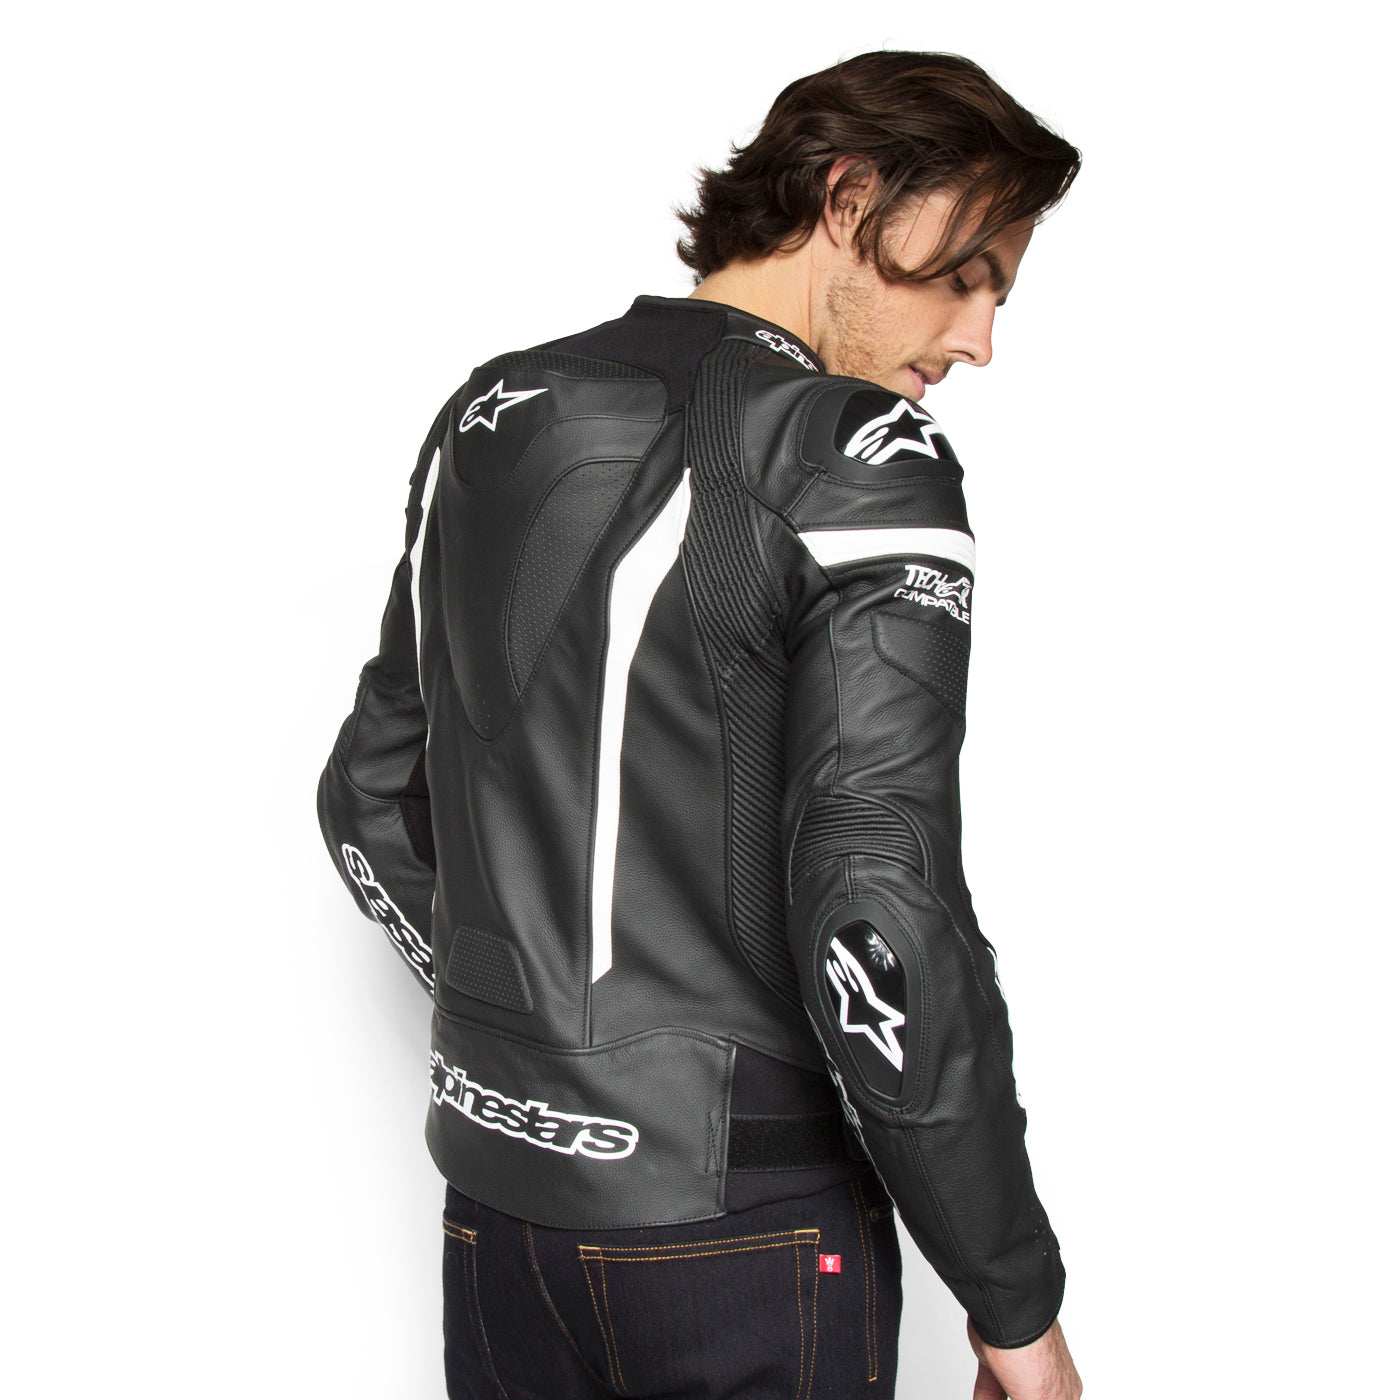 Alpinestars Leather Jacket >> Alpinestars Missile Air Tech Air Jacket